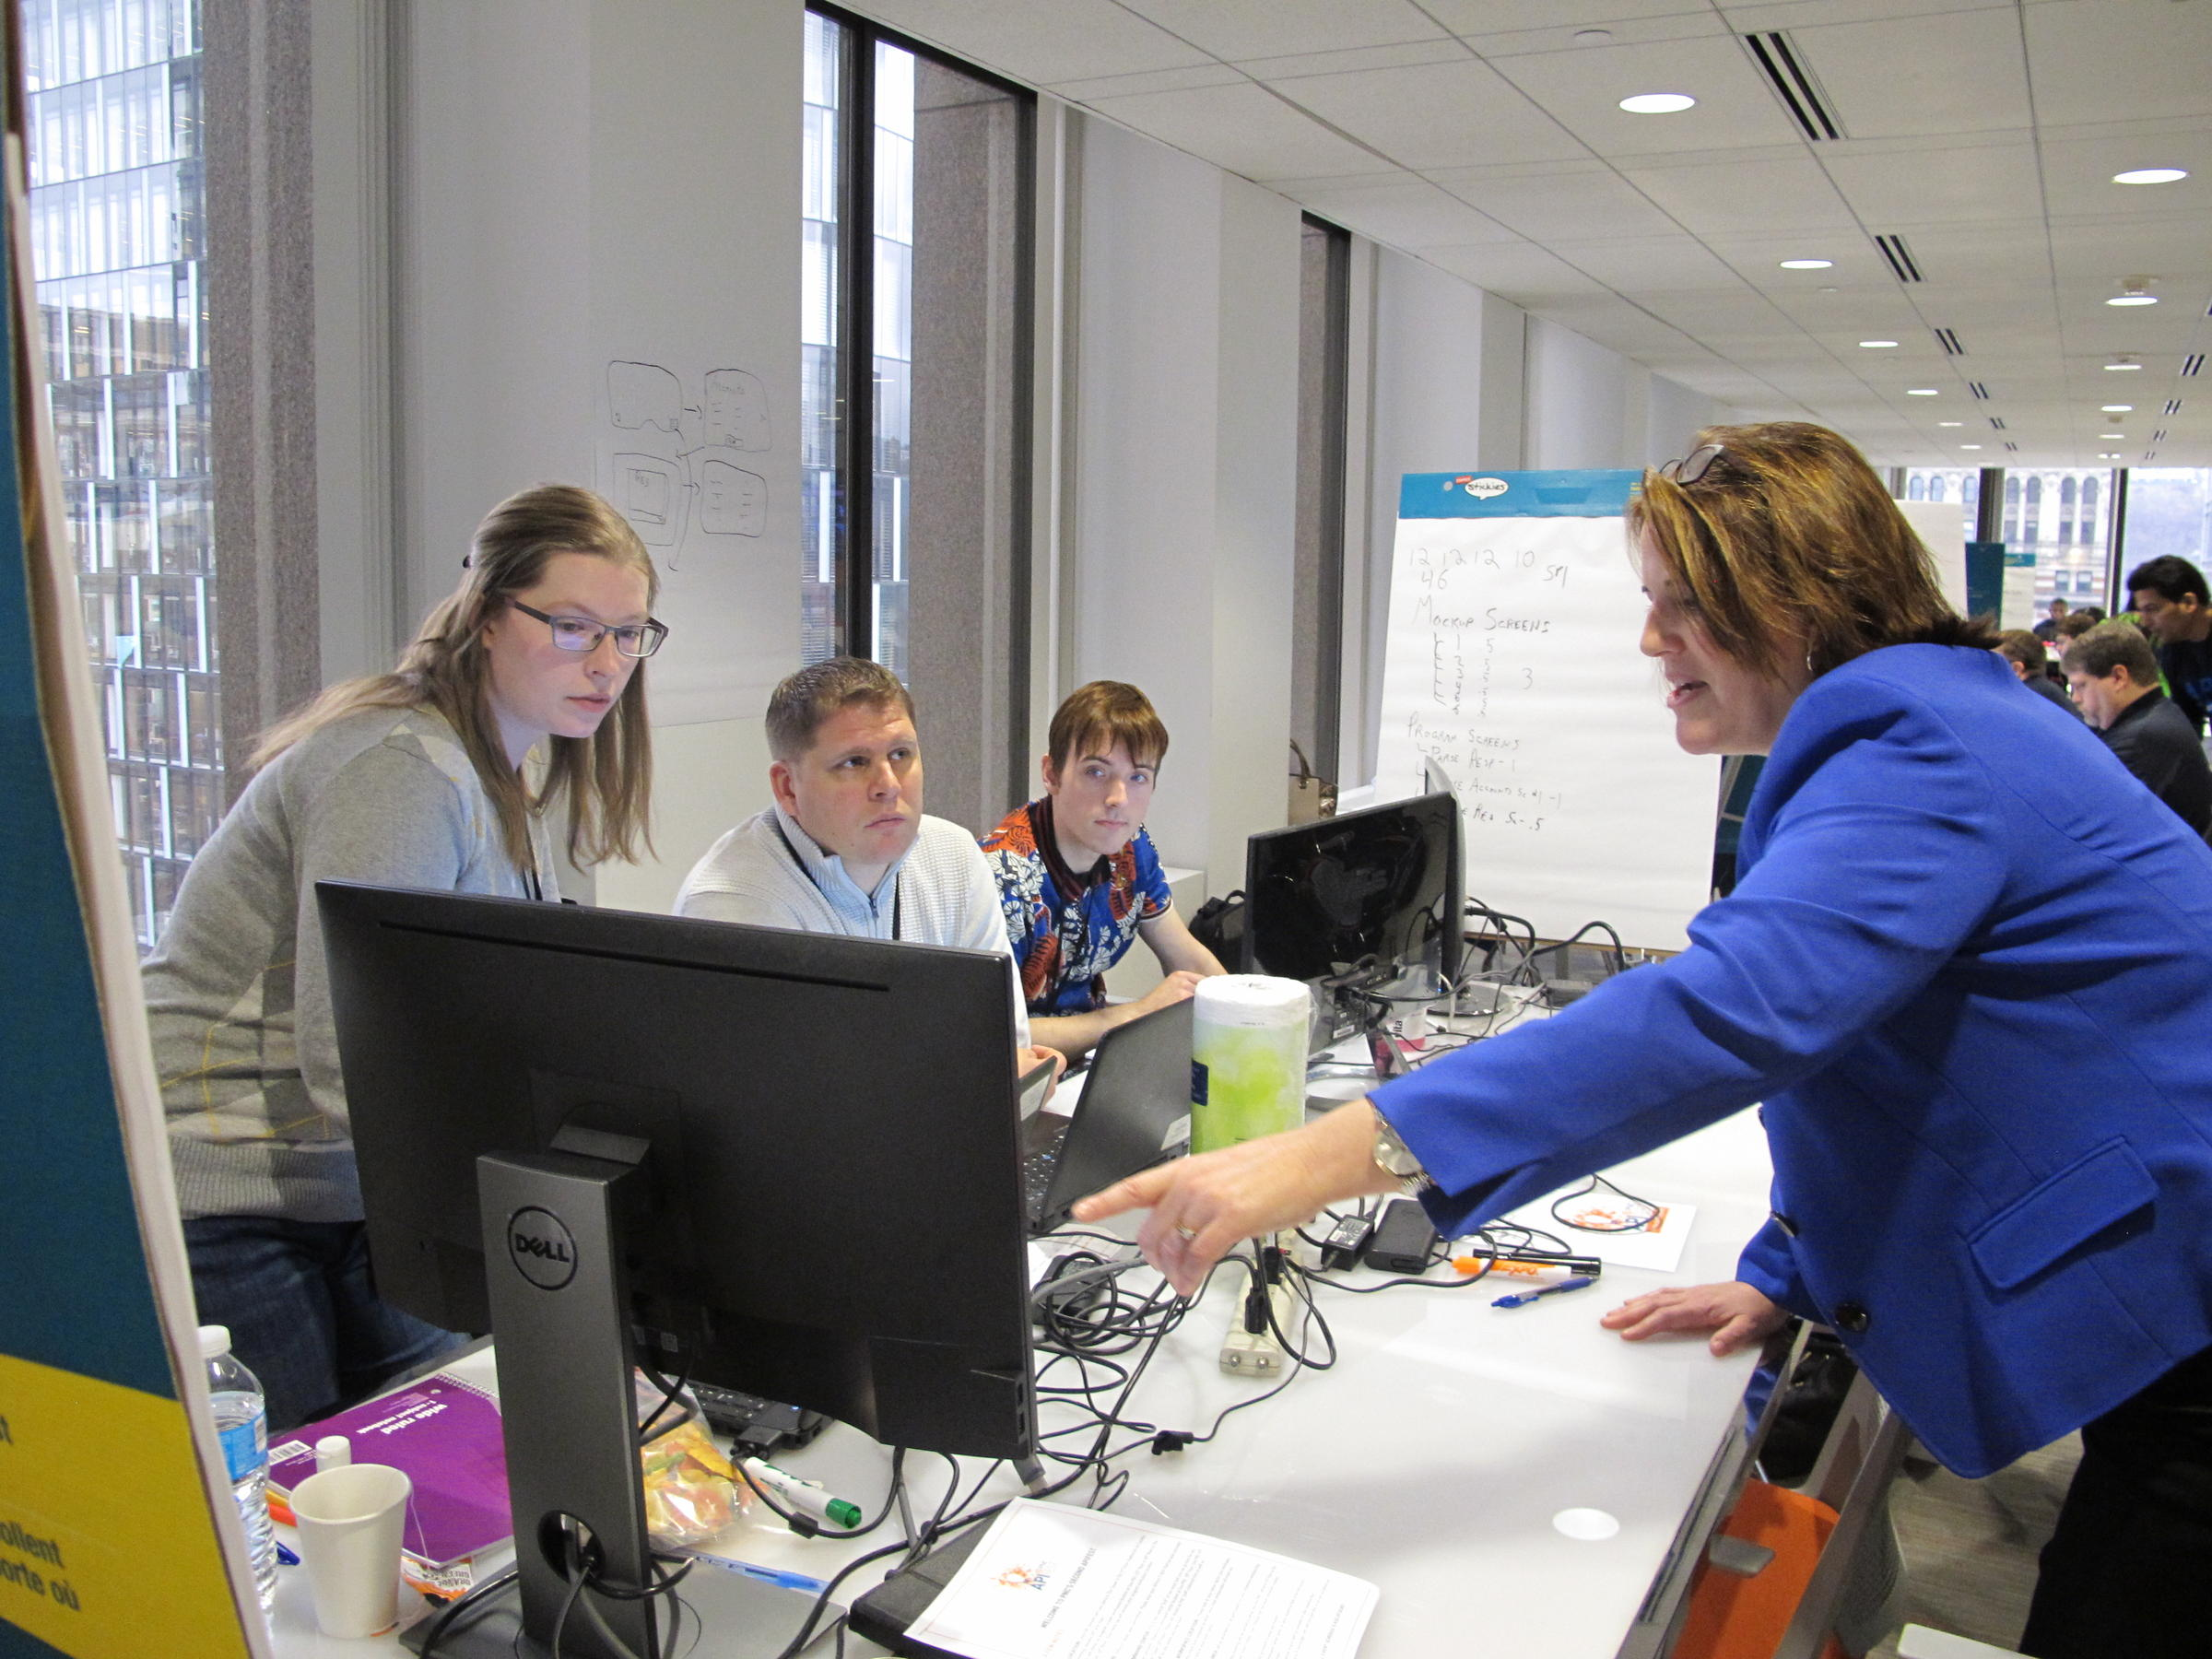 All-Female Team Wins PNC Hack-A-Thon With Health Care And